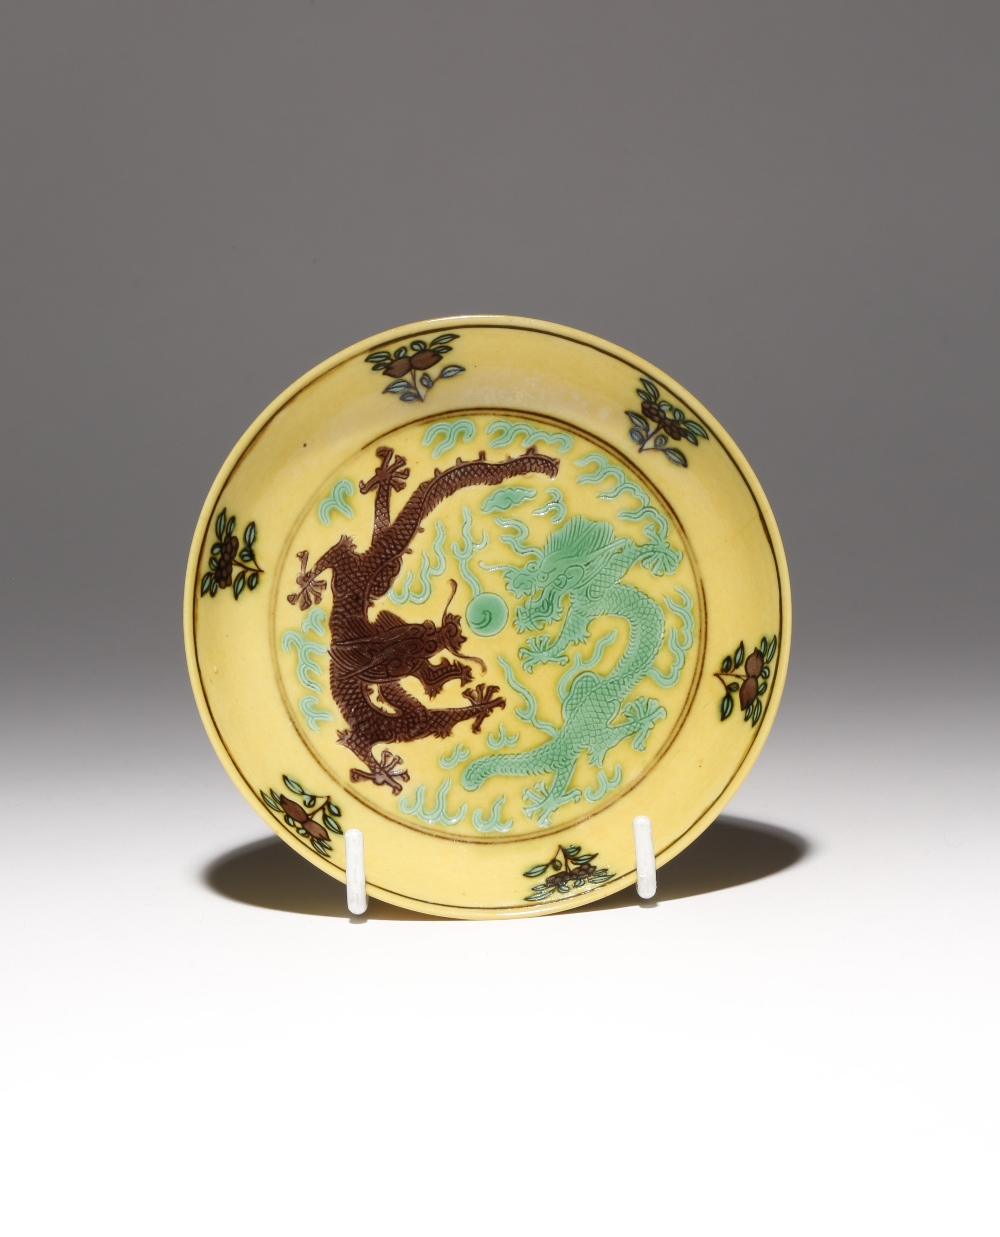 A CHINESE IMPERIAL YELLOW-GROUND 'DRAGON' SAUCER DISH SIX CHARACTER GUANGXU MARK AND OF THE PERIOD